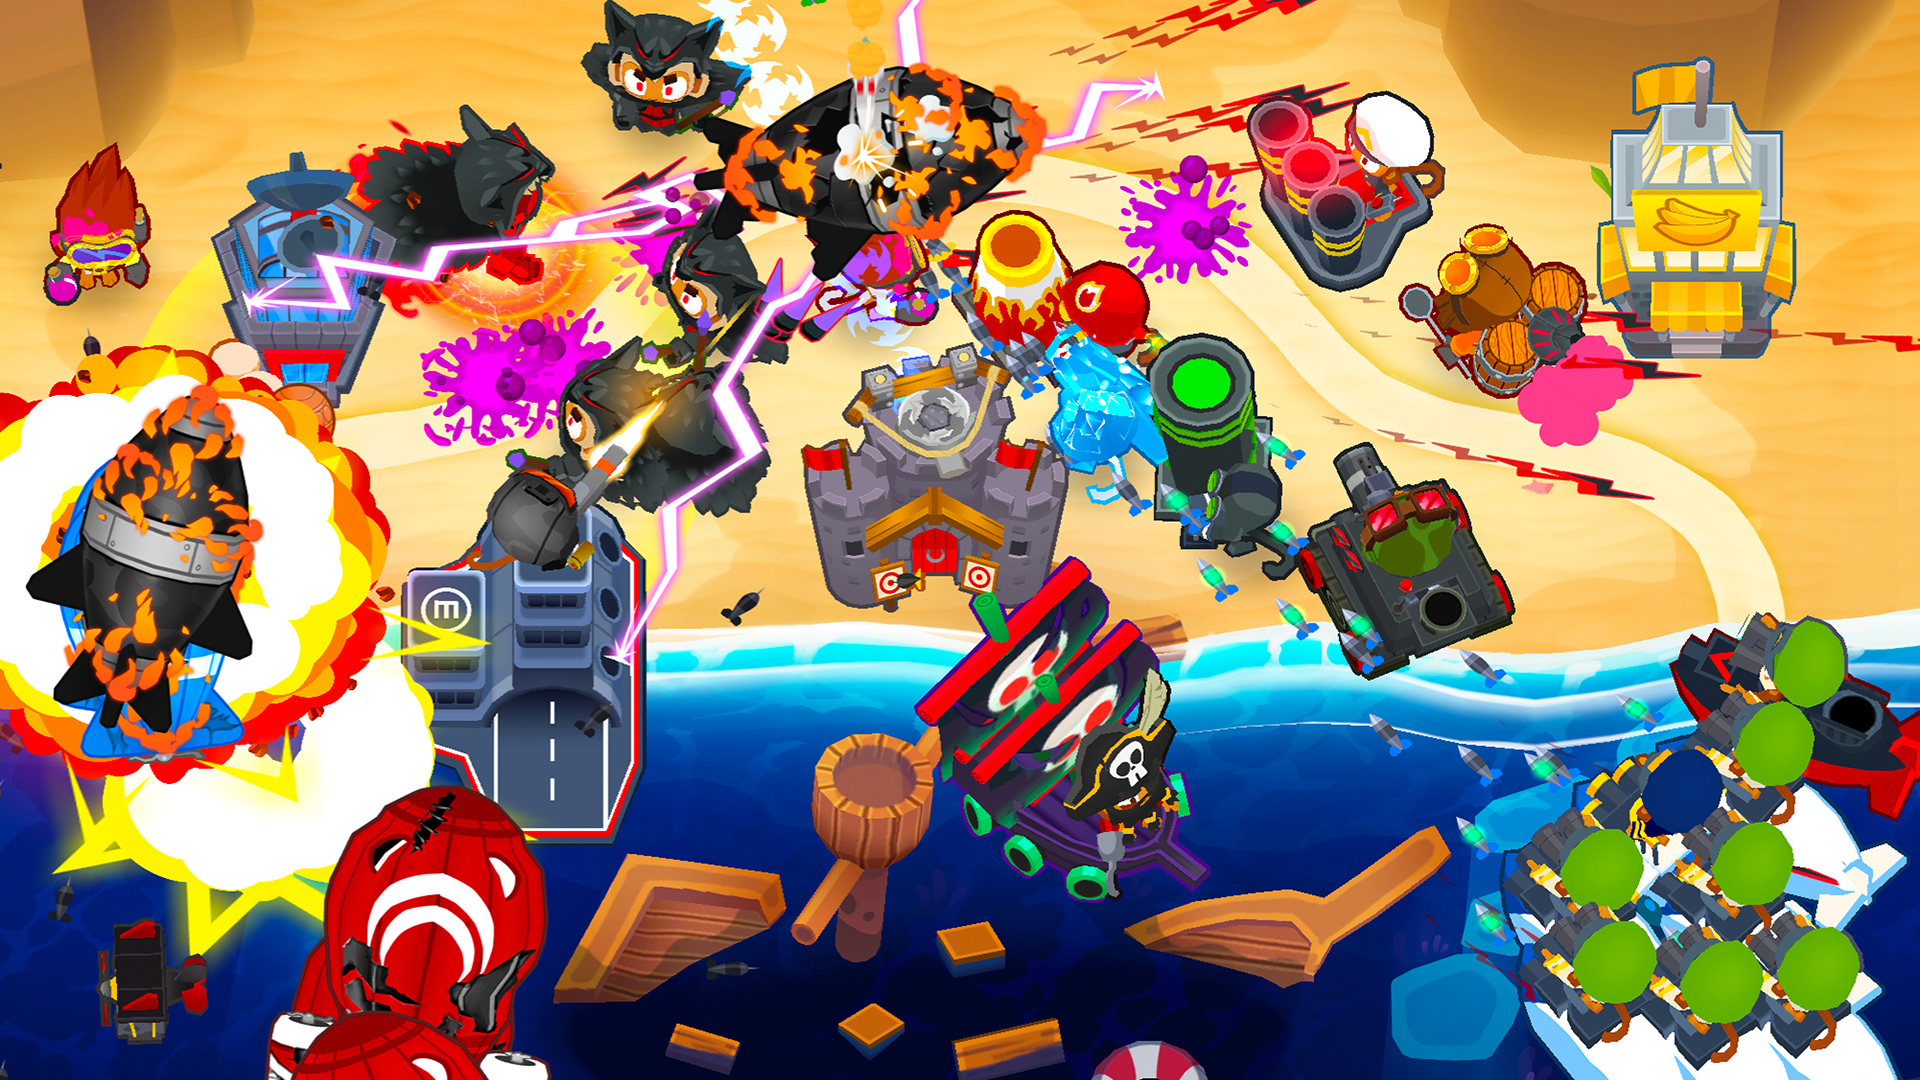 ⛔ Bloons td 6 mod apk ios | bloons td 6 [UPDATED] Mod Apk with